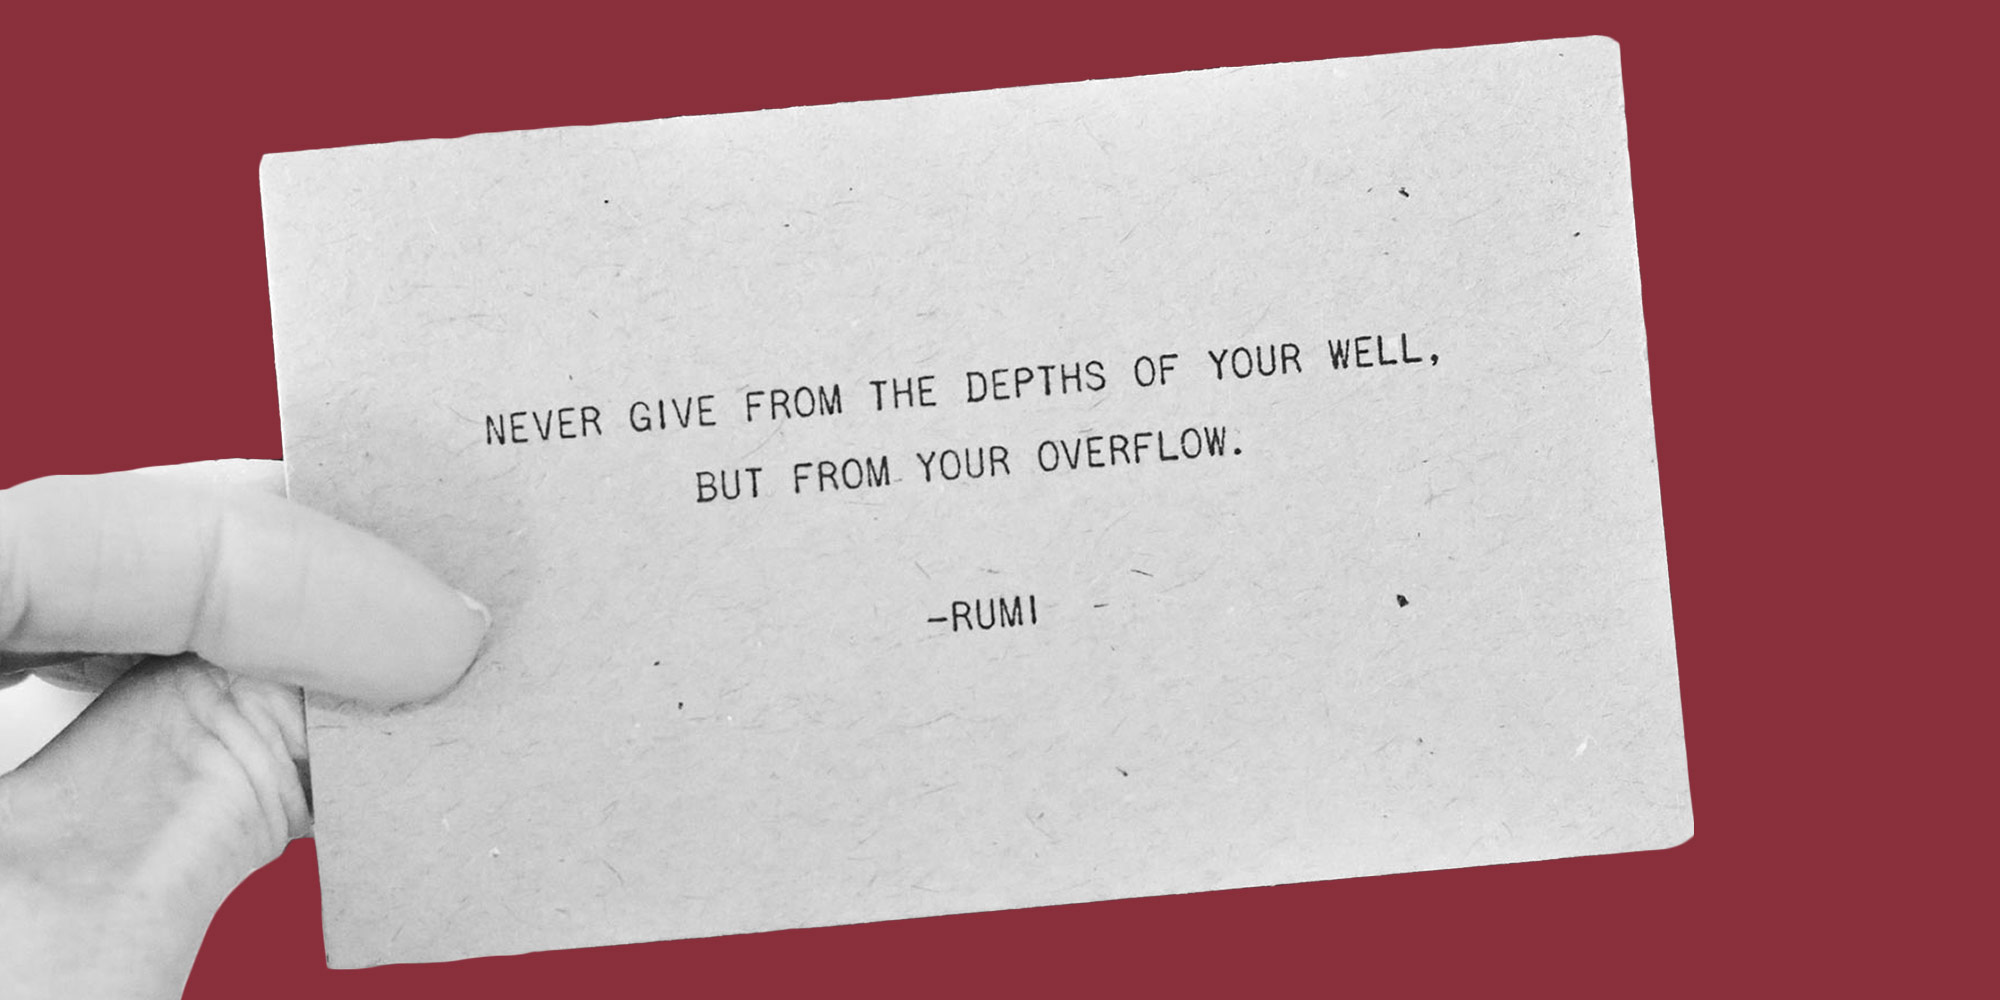 """A business card reads, """"Never give from the depths of your well, but from your overflow. -Rumi"""""""